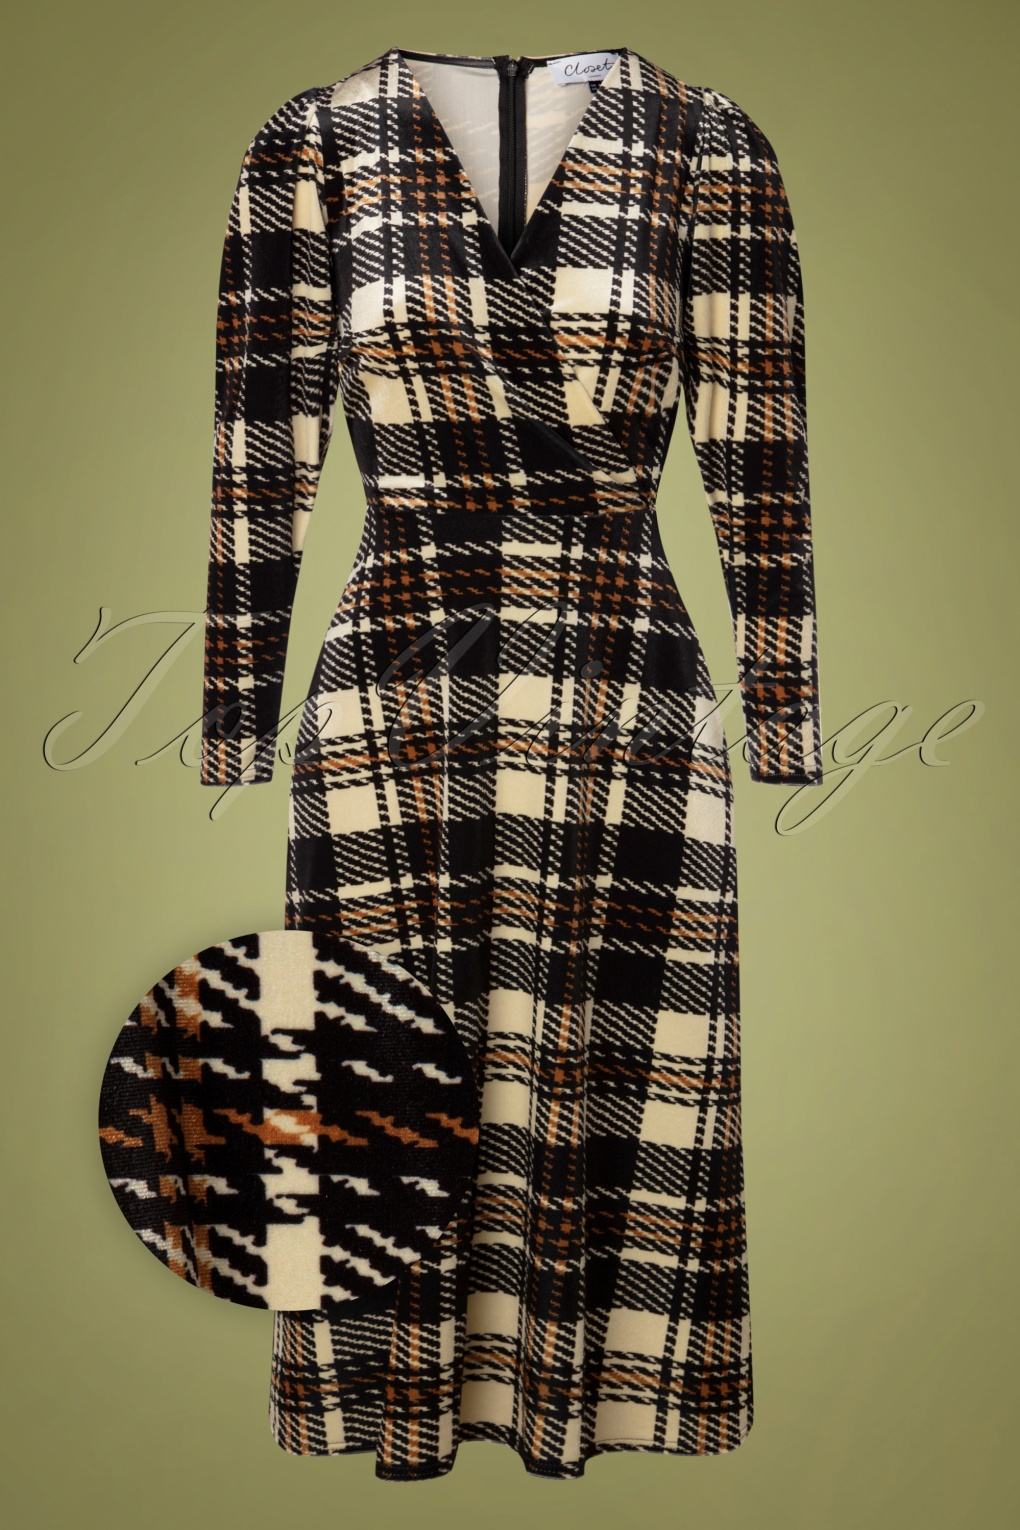 Vintage Style Dresses | Vintage Inspired Dresses 60s Glory Velvet Wrap Dress in Beige and Black £88.84 AT vintagedancer.com